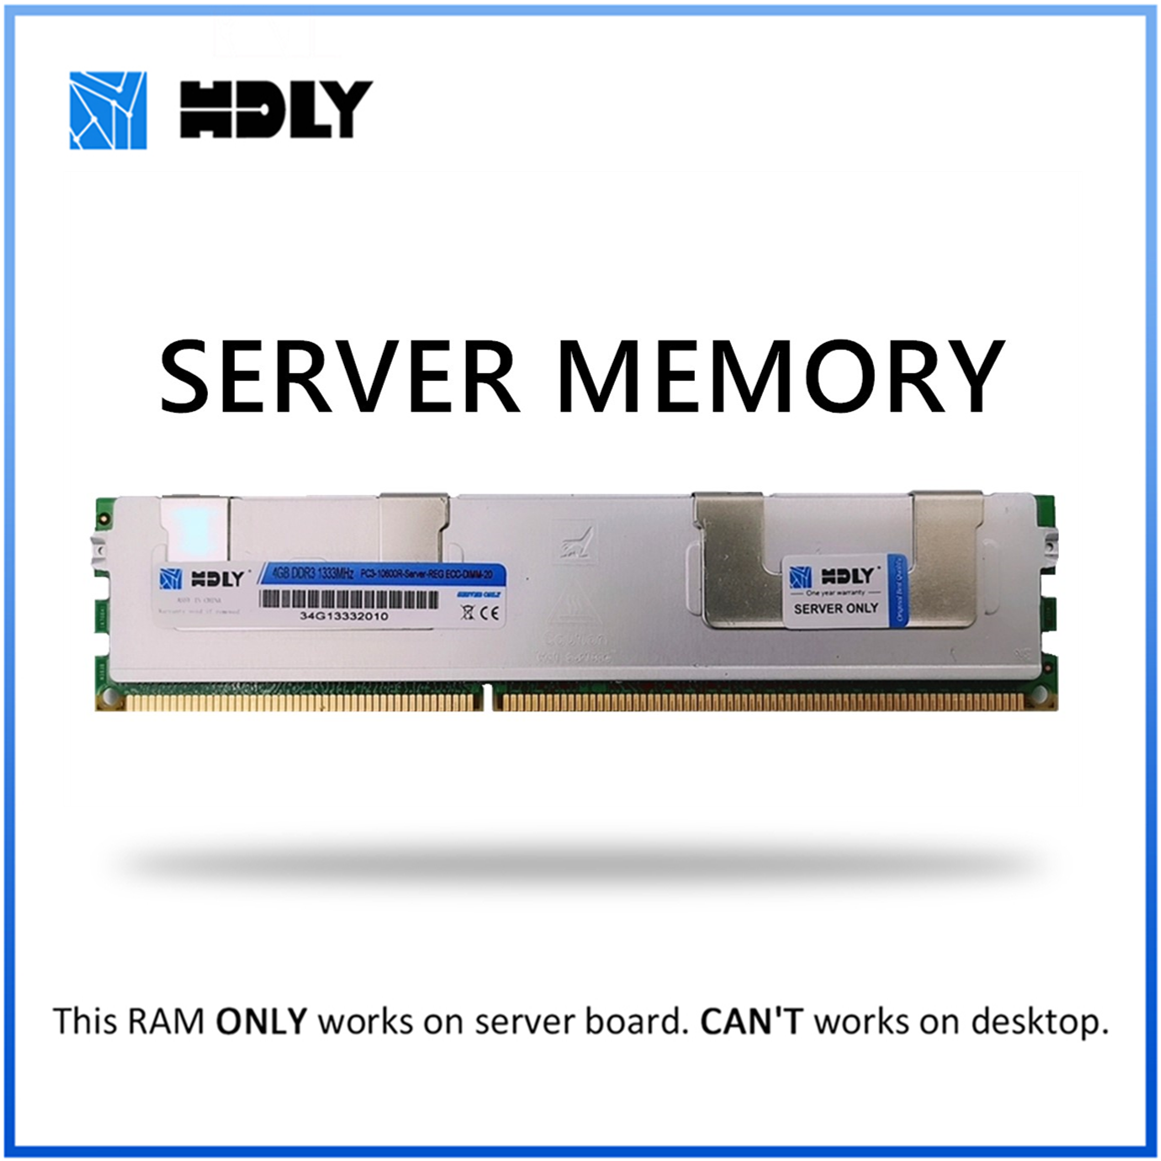 RAM with Heat Sink <font><b>DDR3</b></font> <font><b>4GB</b></font> 8GB 16GB 32GB 1333MHz <font><b>1600Mhz</b></font> 1066Mhz REG ECC HDLY Server Memory 2011 CPU X58 X79 Motherboard Dimm image